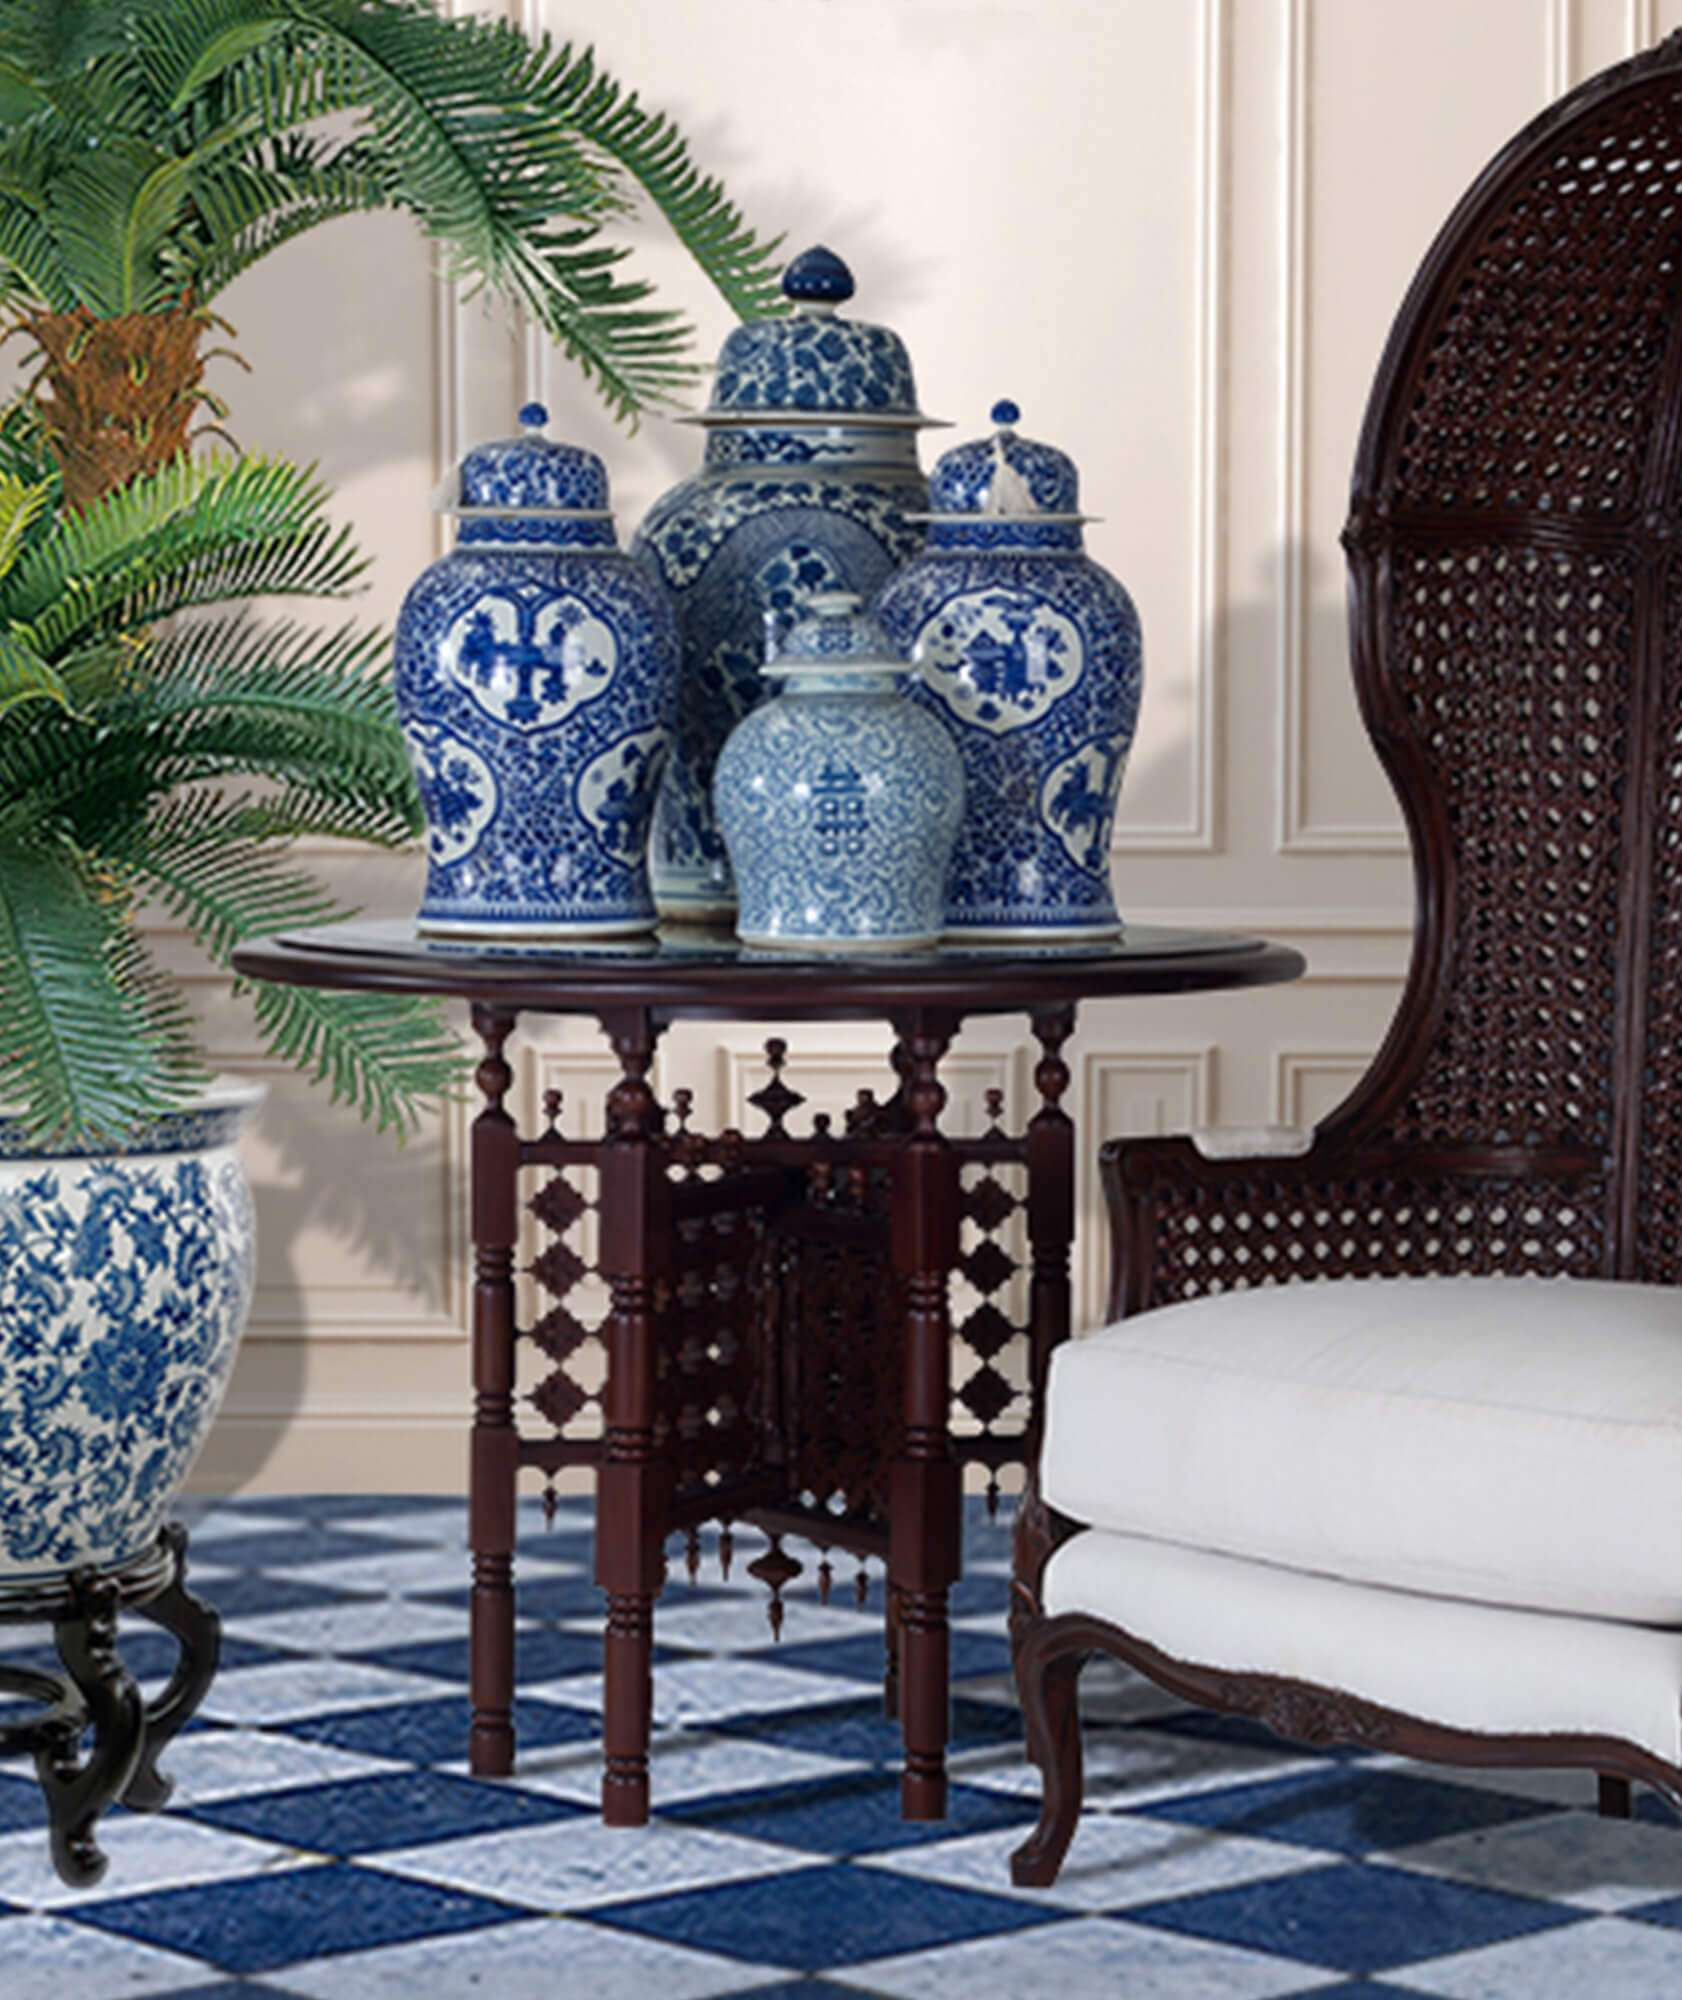 side table, fretwork, mogul, colonial furniture, occassional table, hall table